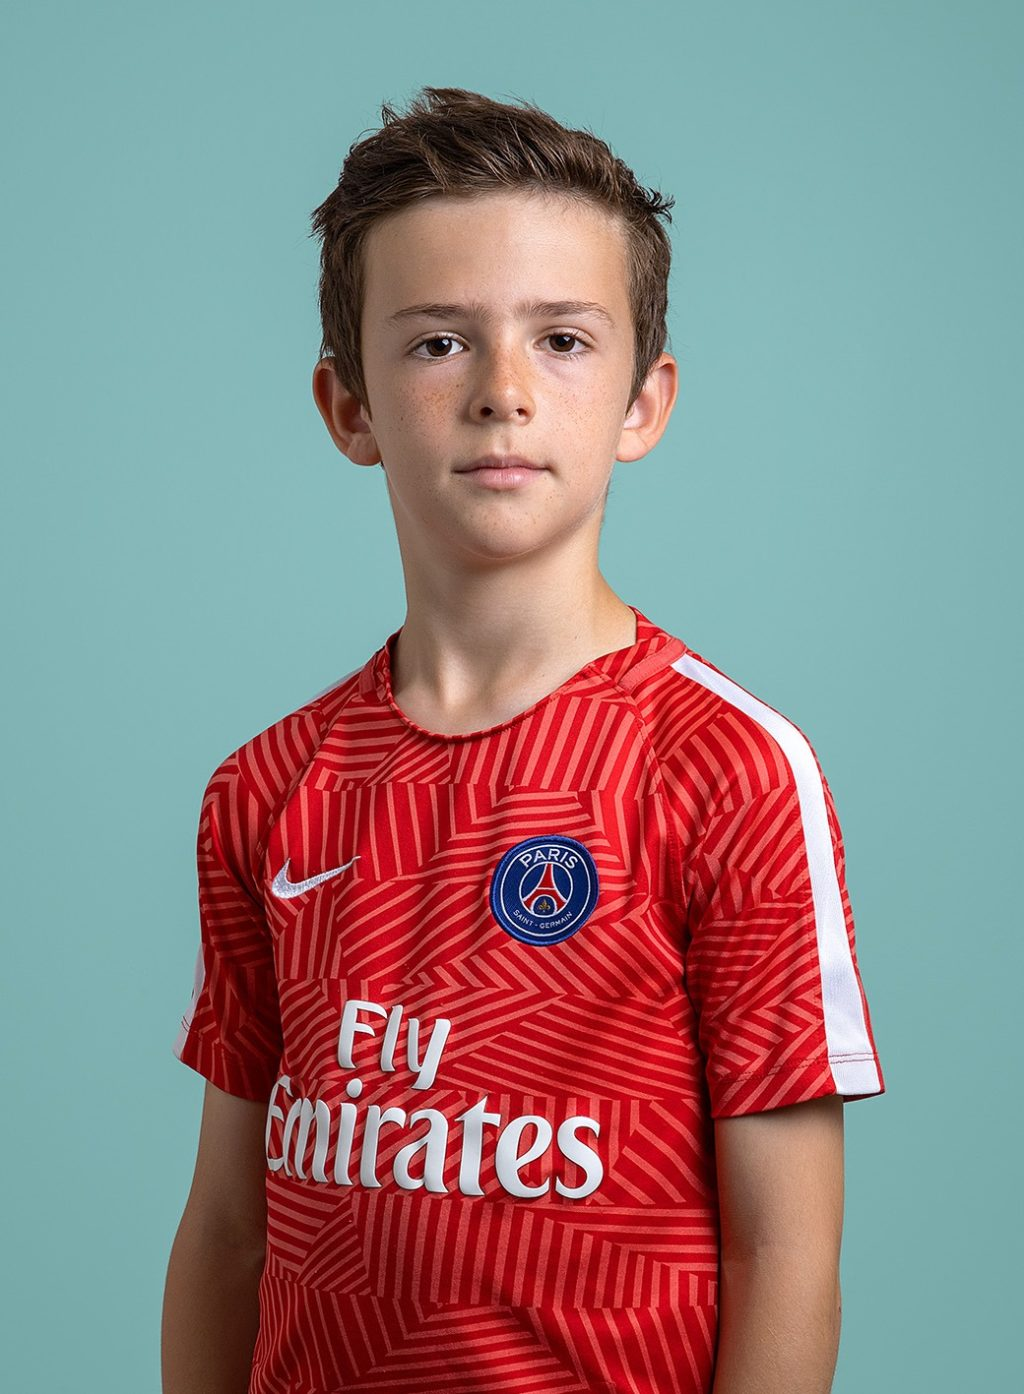 ISL Student Julien, 11 years old